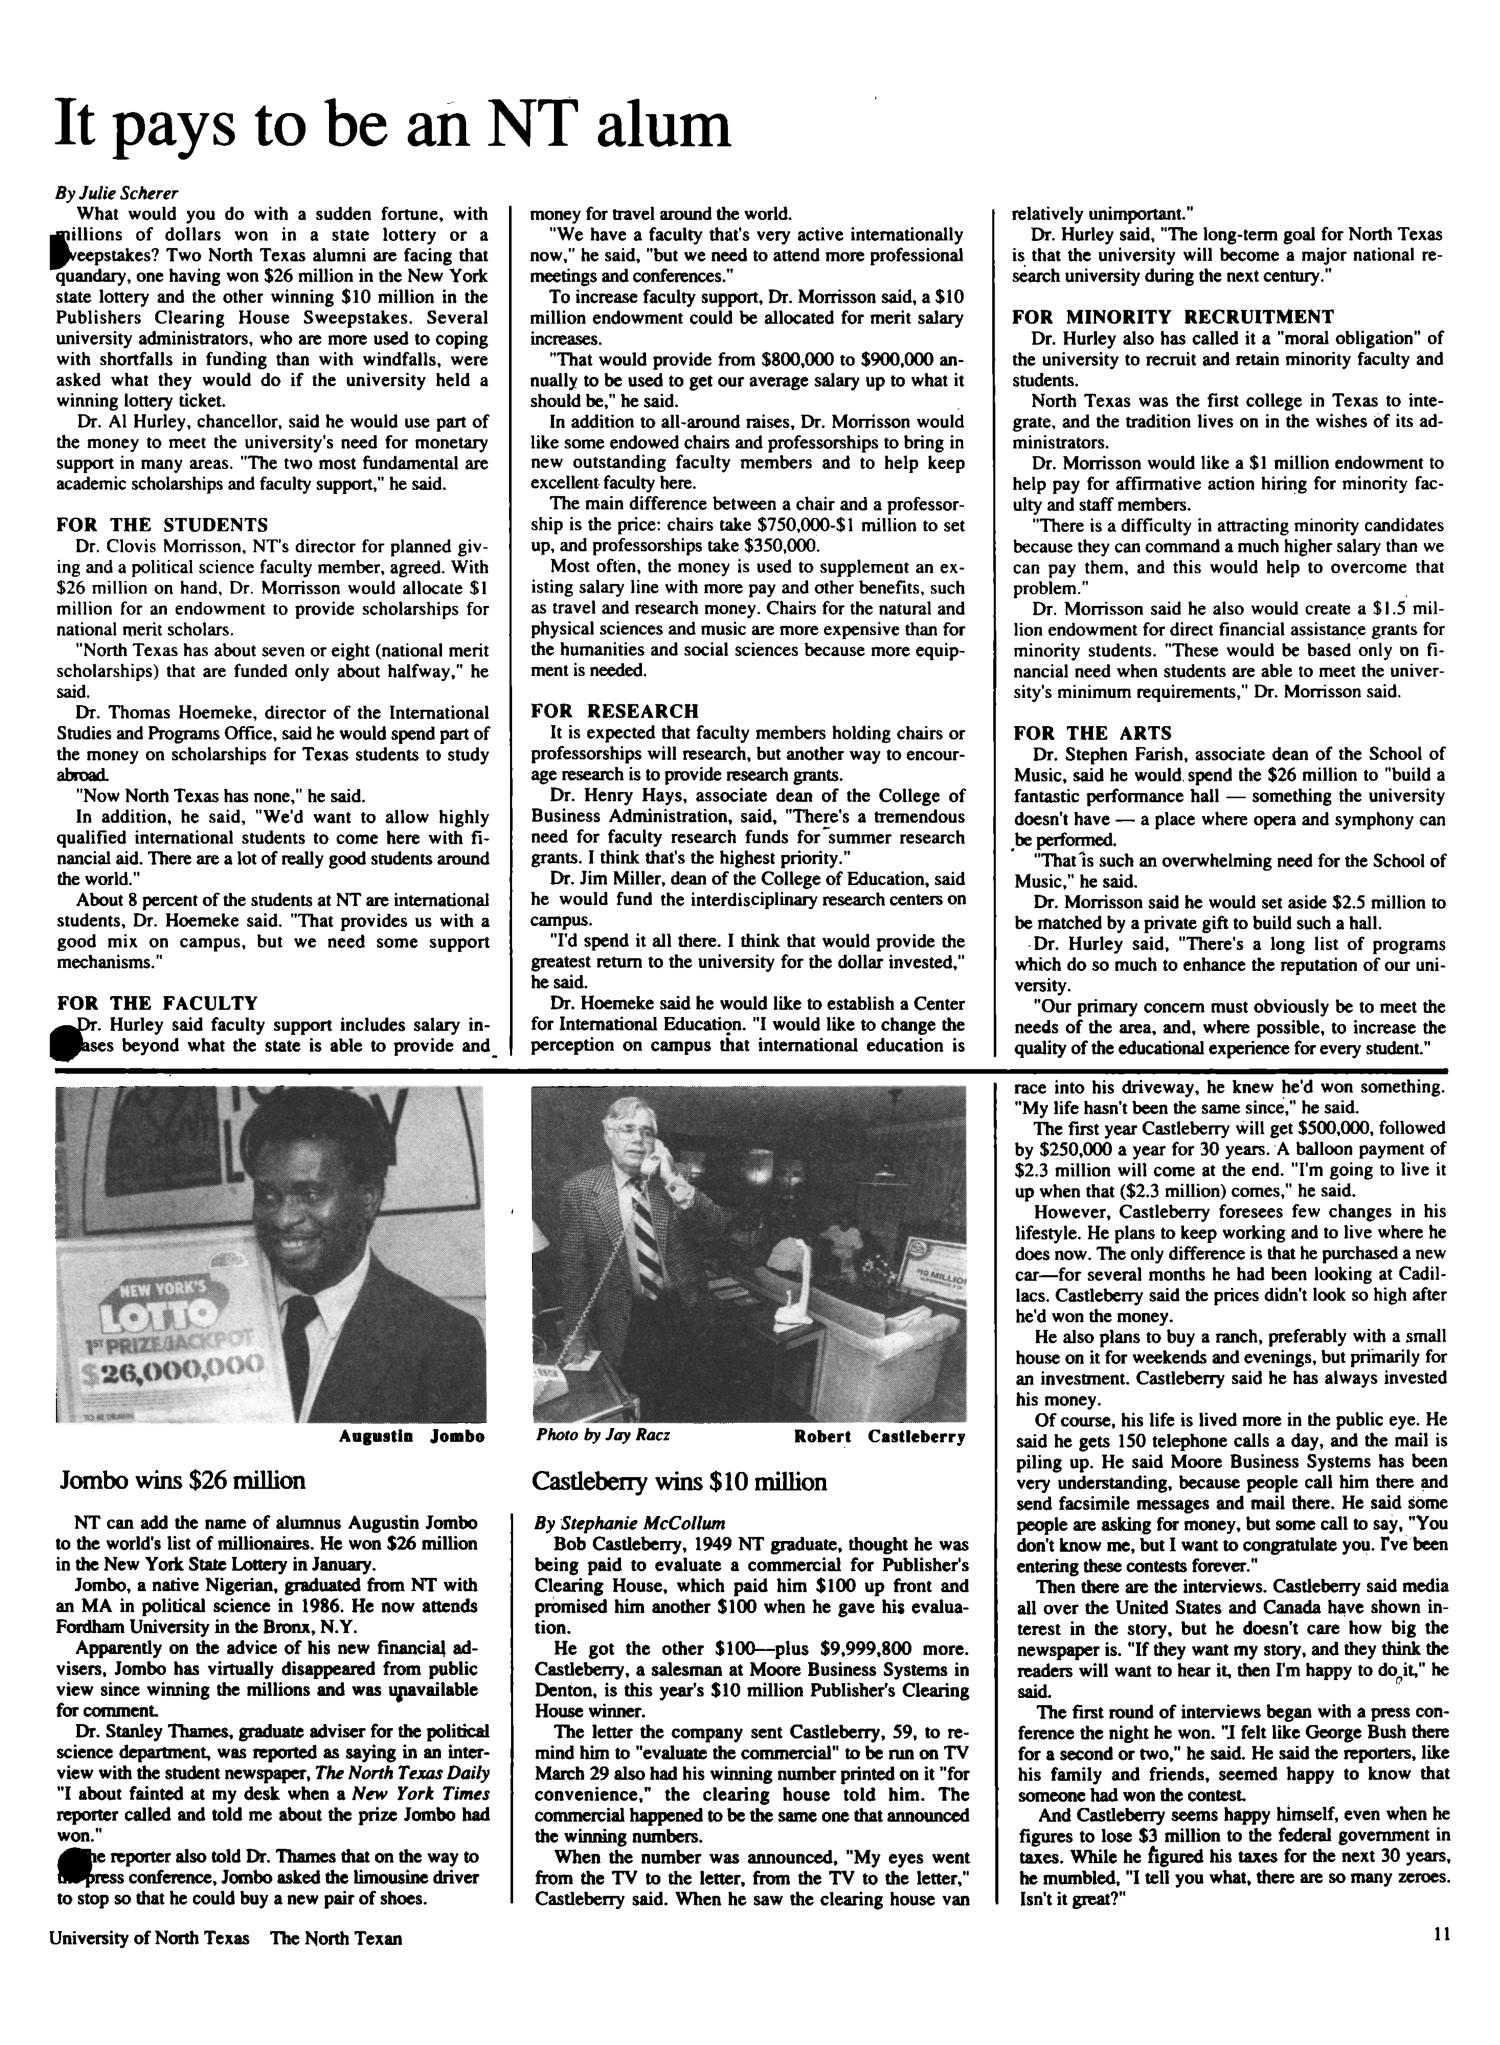 The North Texan, Volume 39, Number 3, Summer 1989                                                                                                      11